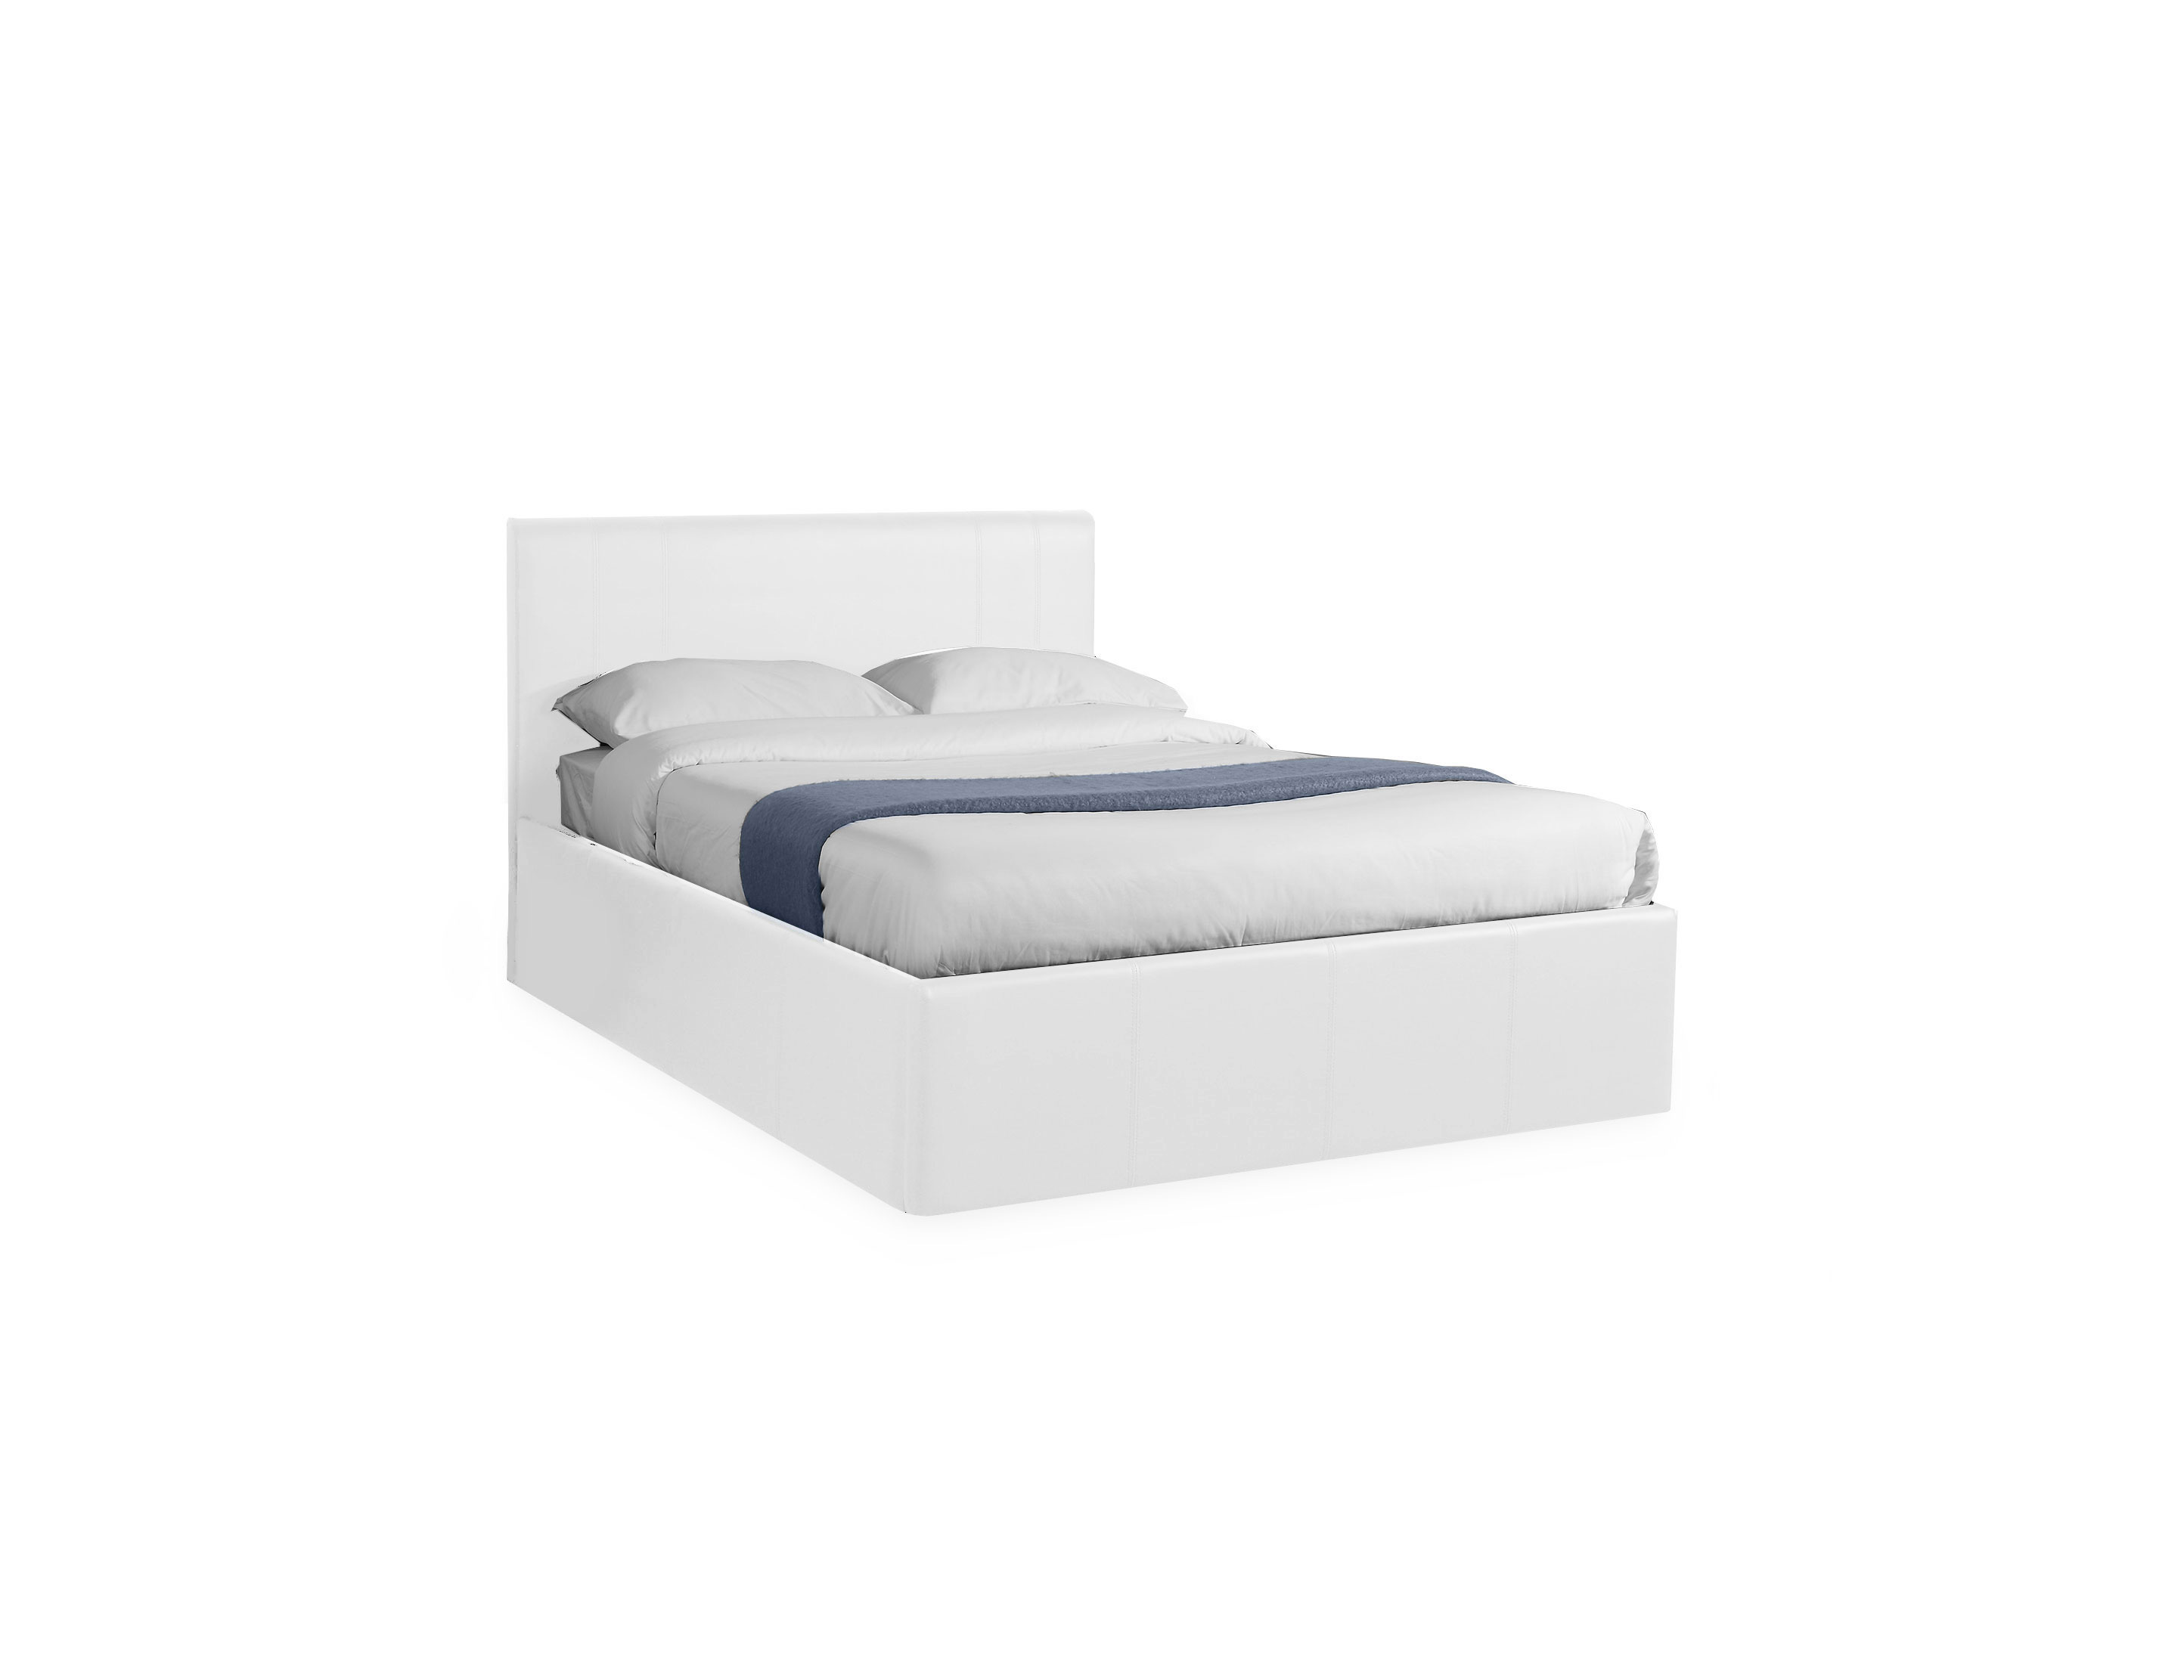 Reveal Queen Side Lifting Storage Bed Expand Furniture Folding Tables Smarter Wall Beds Space Savers